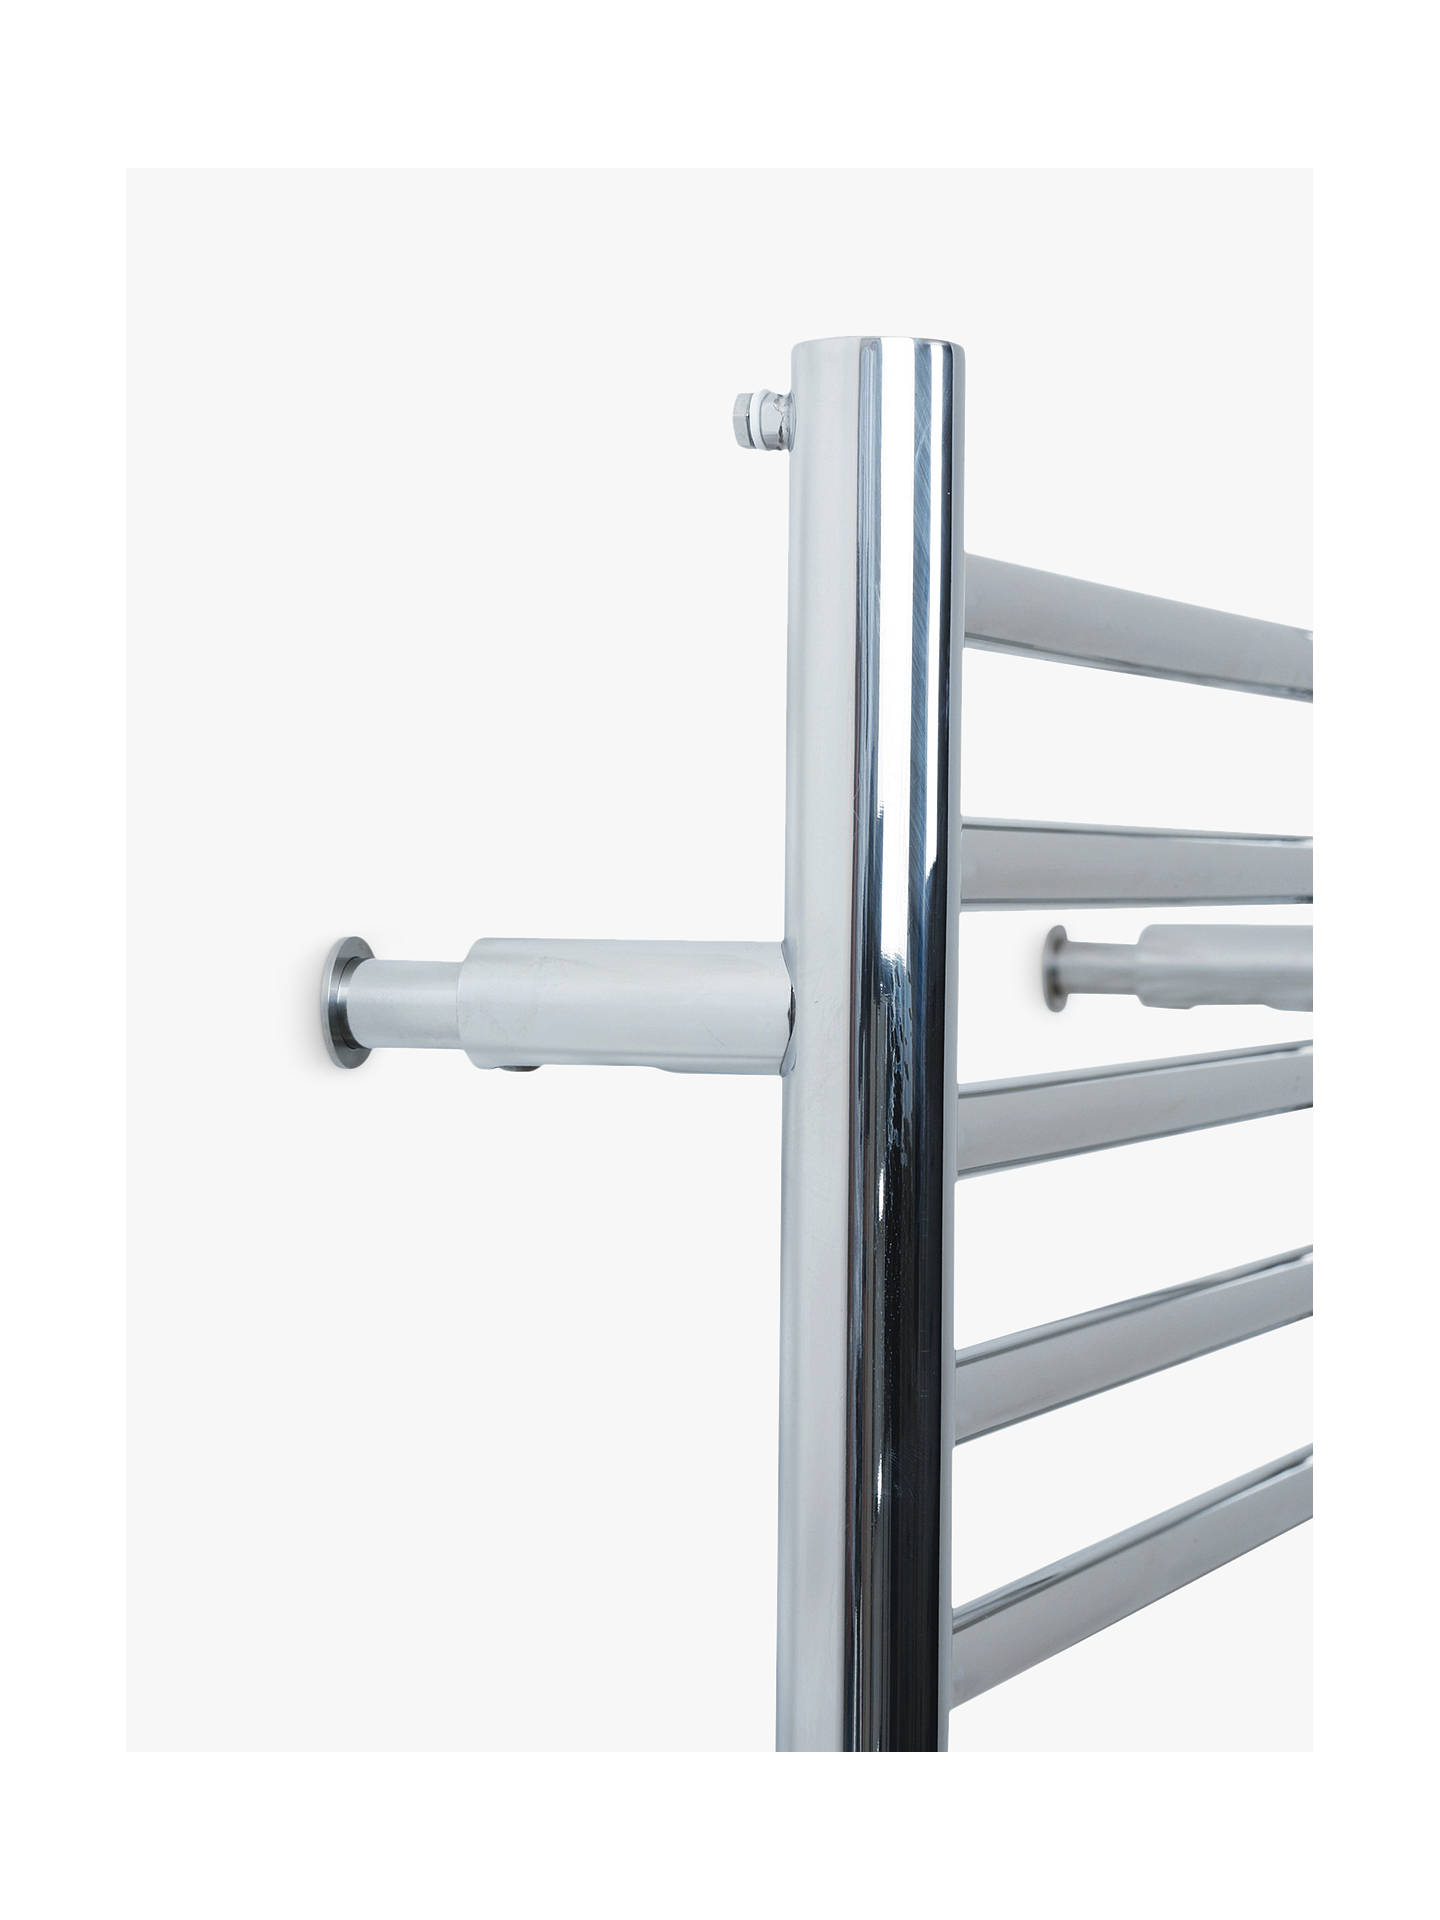 Buy John Lewis & Partners Radiator Adjustable Brackets, Polished Chrome Online at johnlewis.com